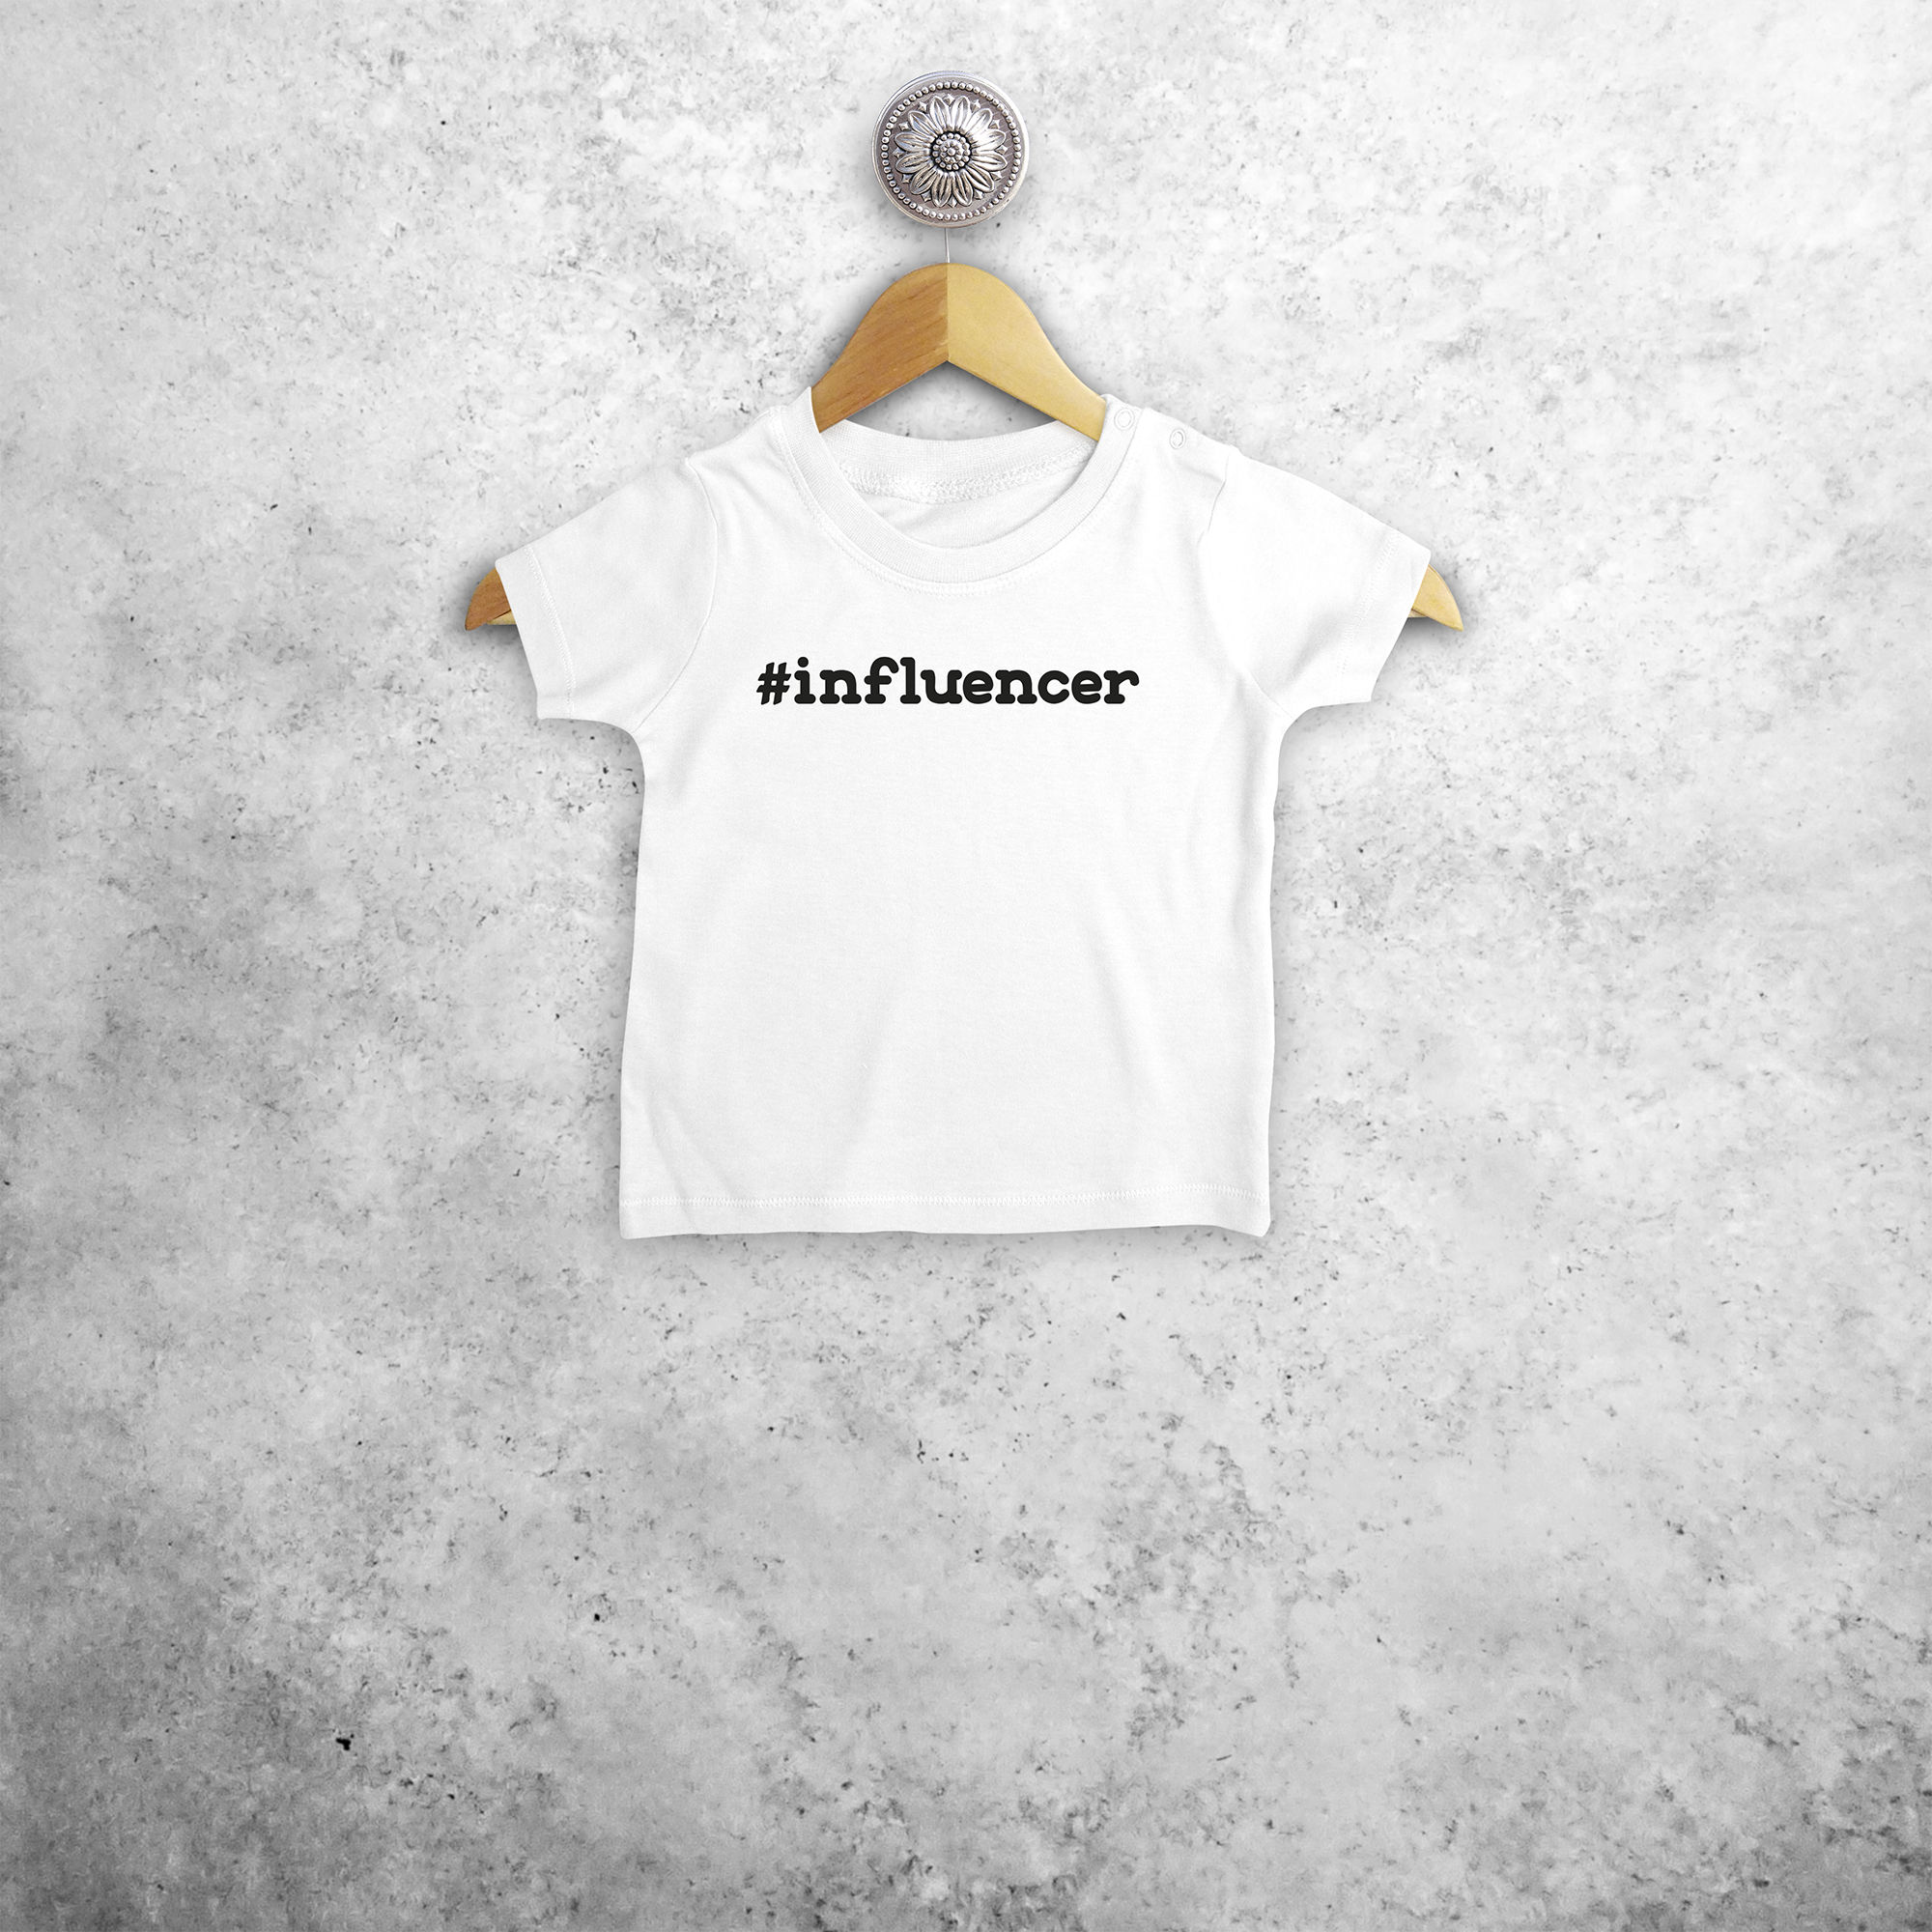 '#influencer' baby shortsleeve shirt